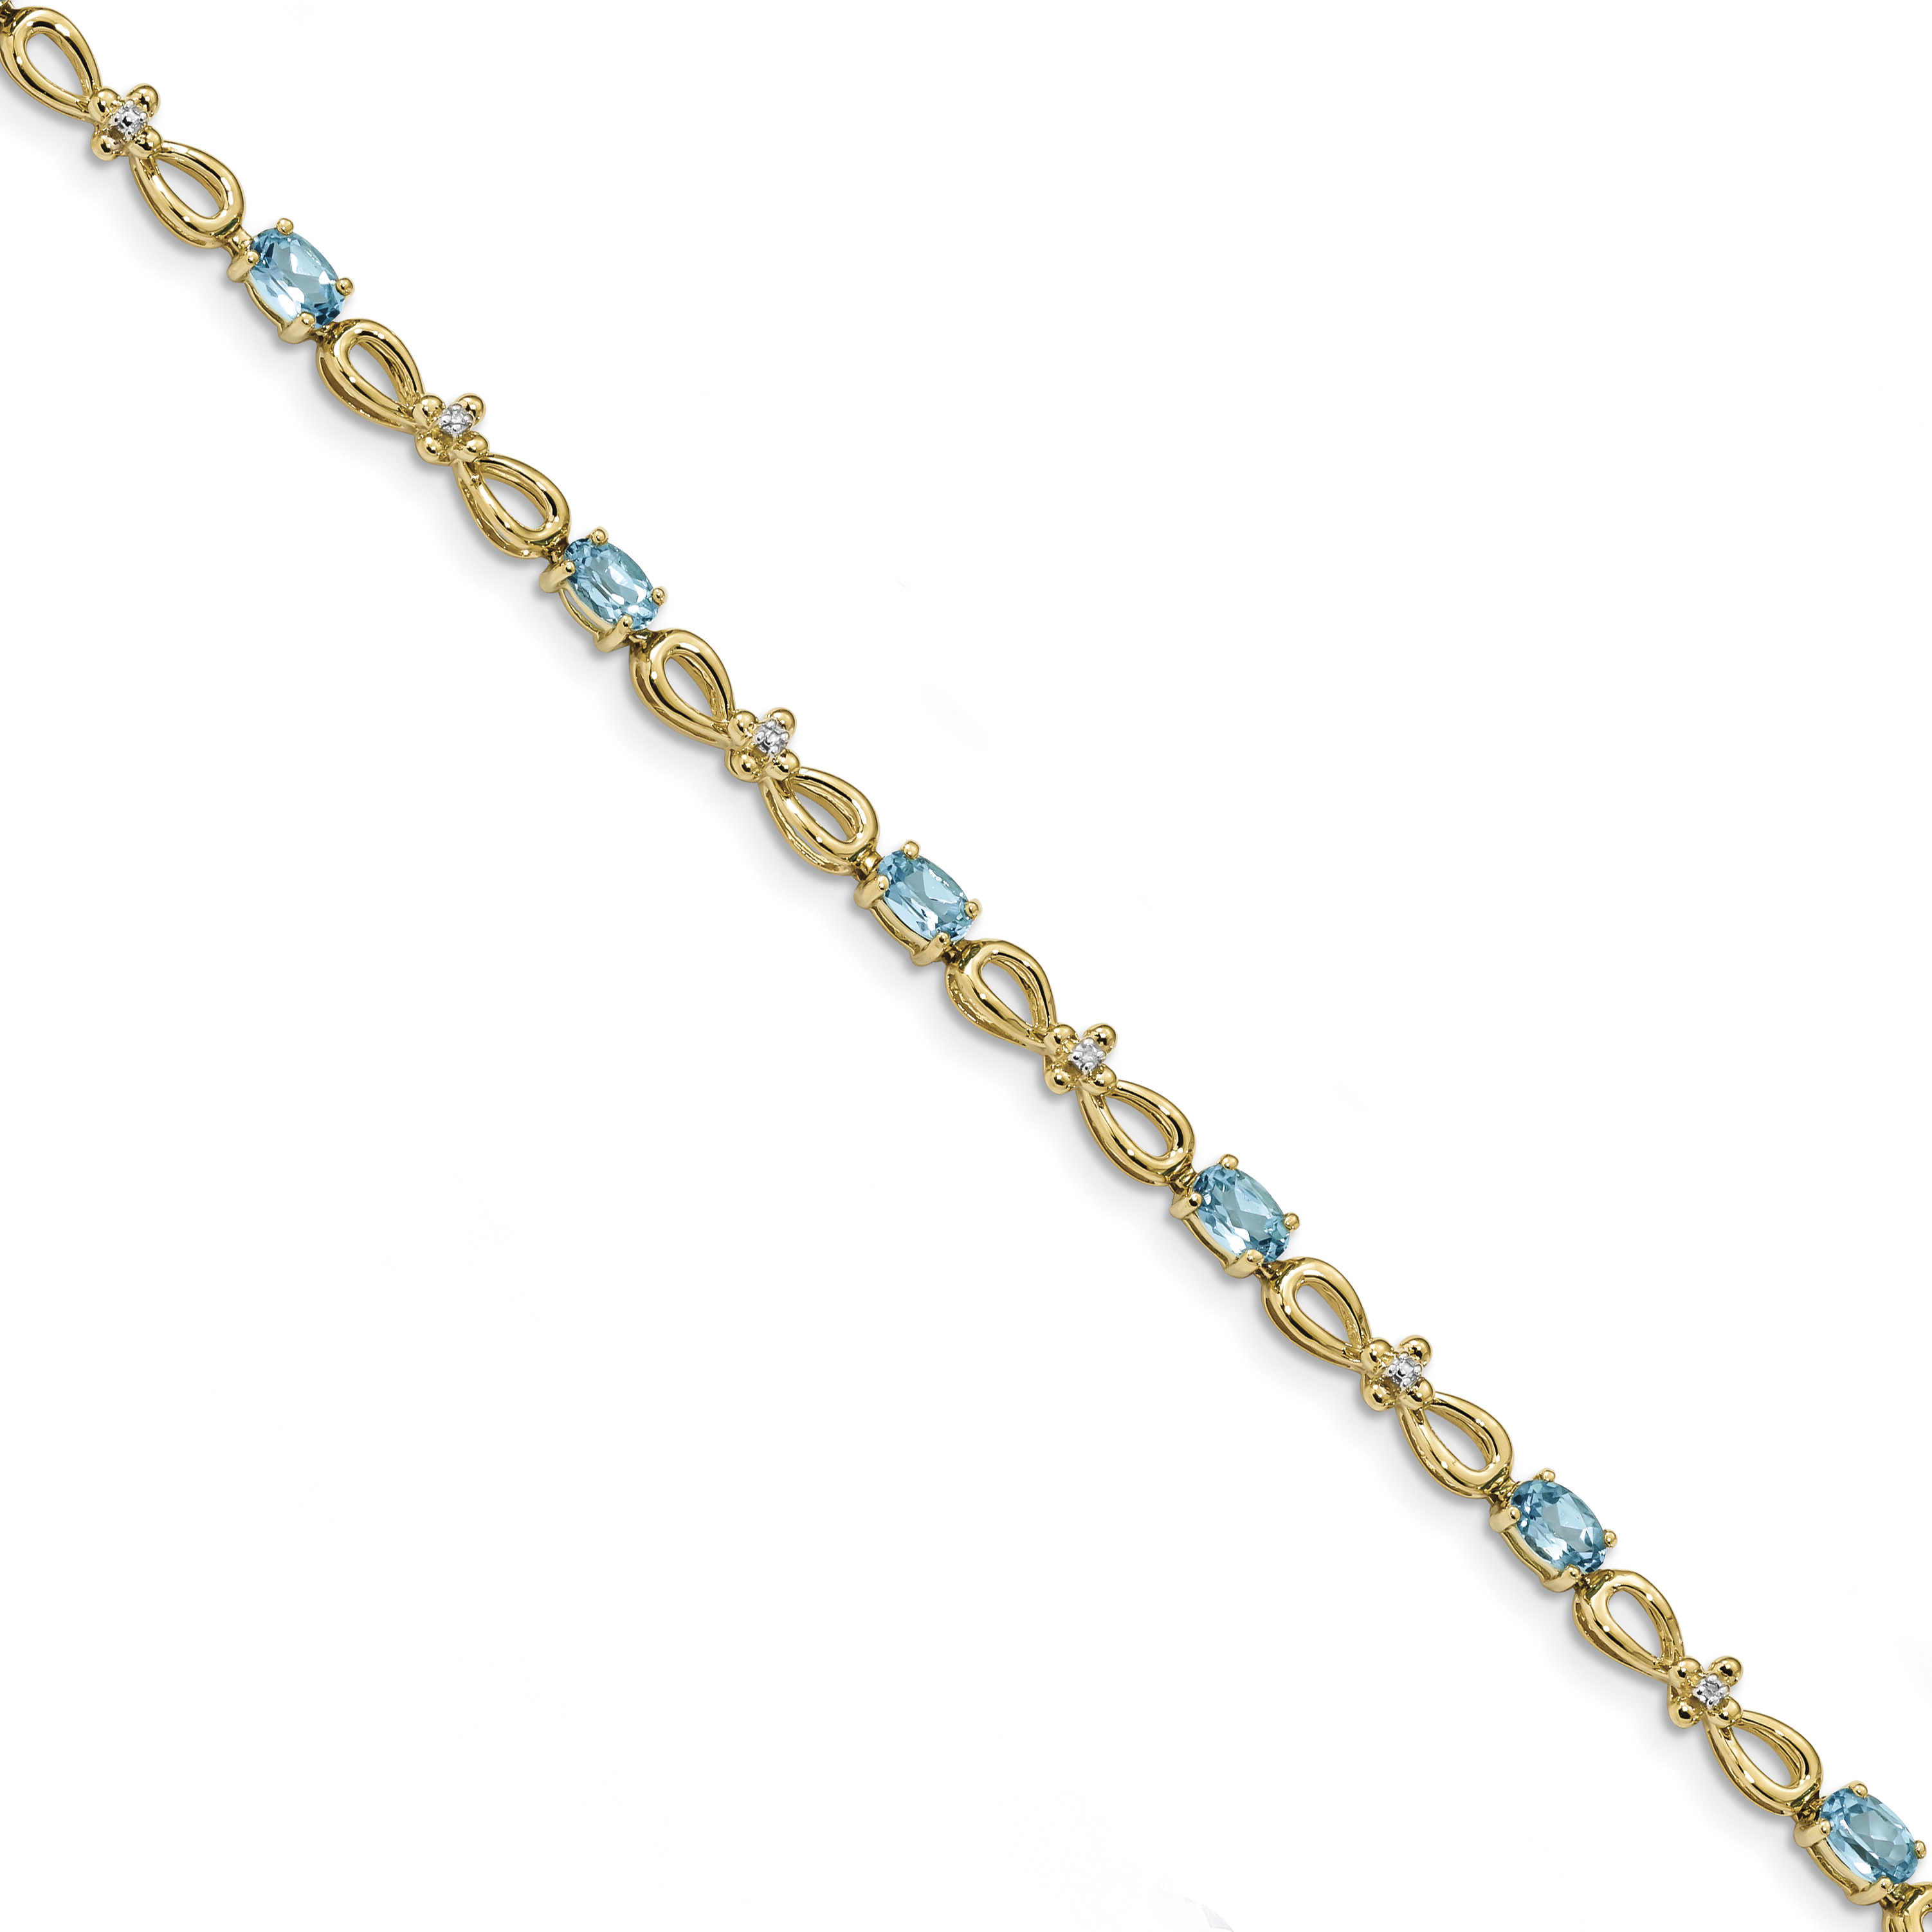 14k Polished 0.01ct. Diamond & 3ct Blue Topaz 7.5in Bracelet by Saris and Things QG